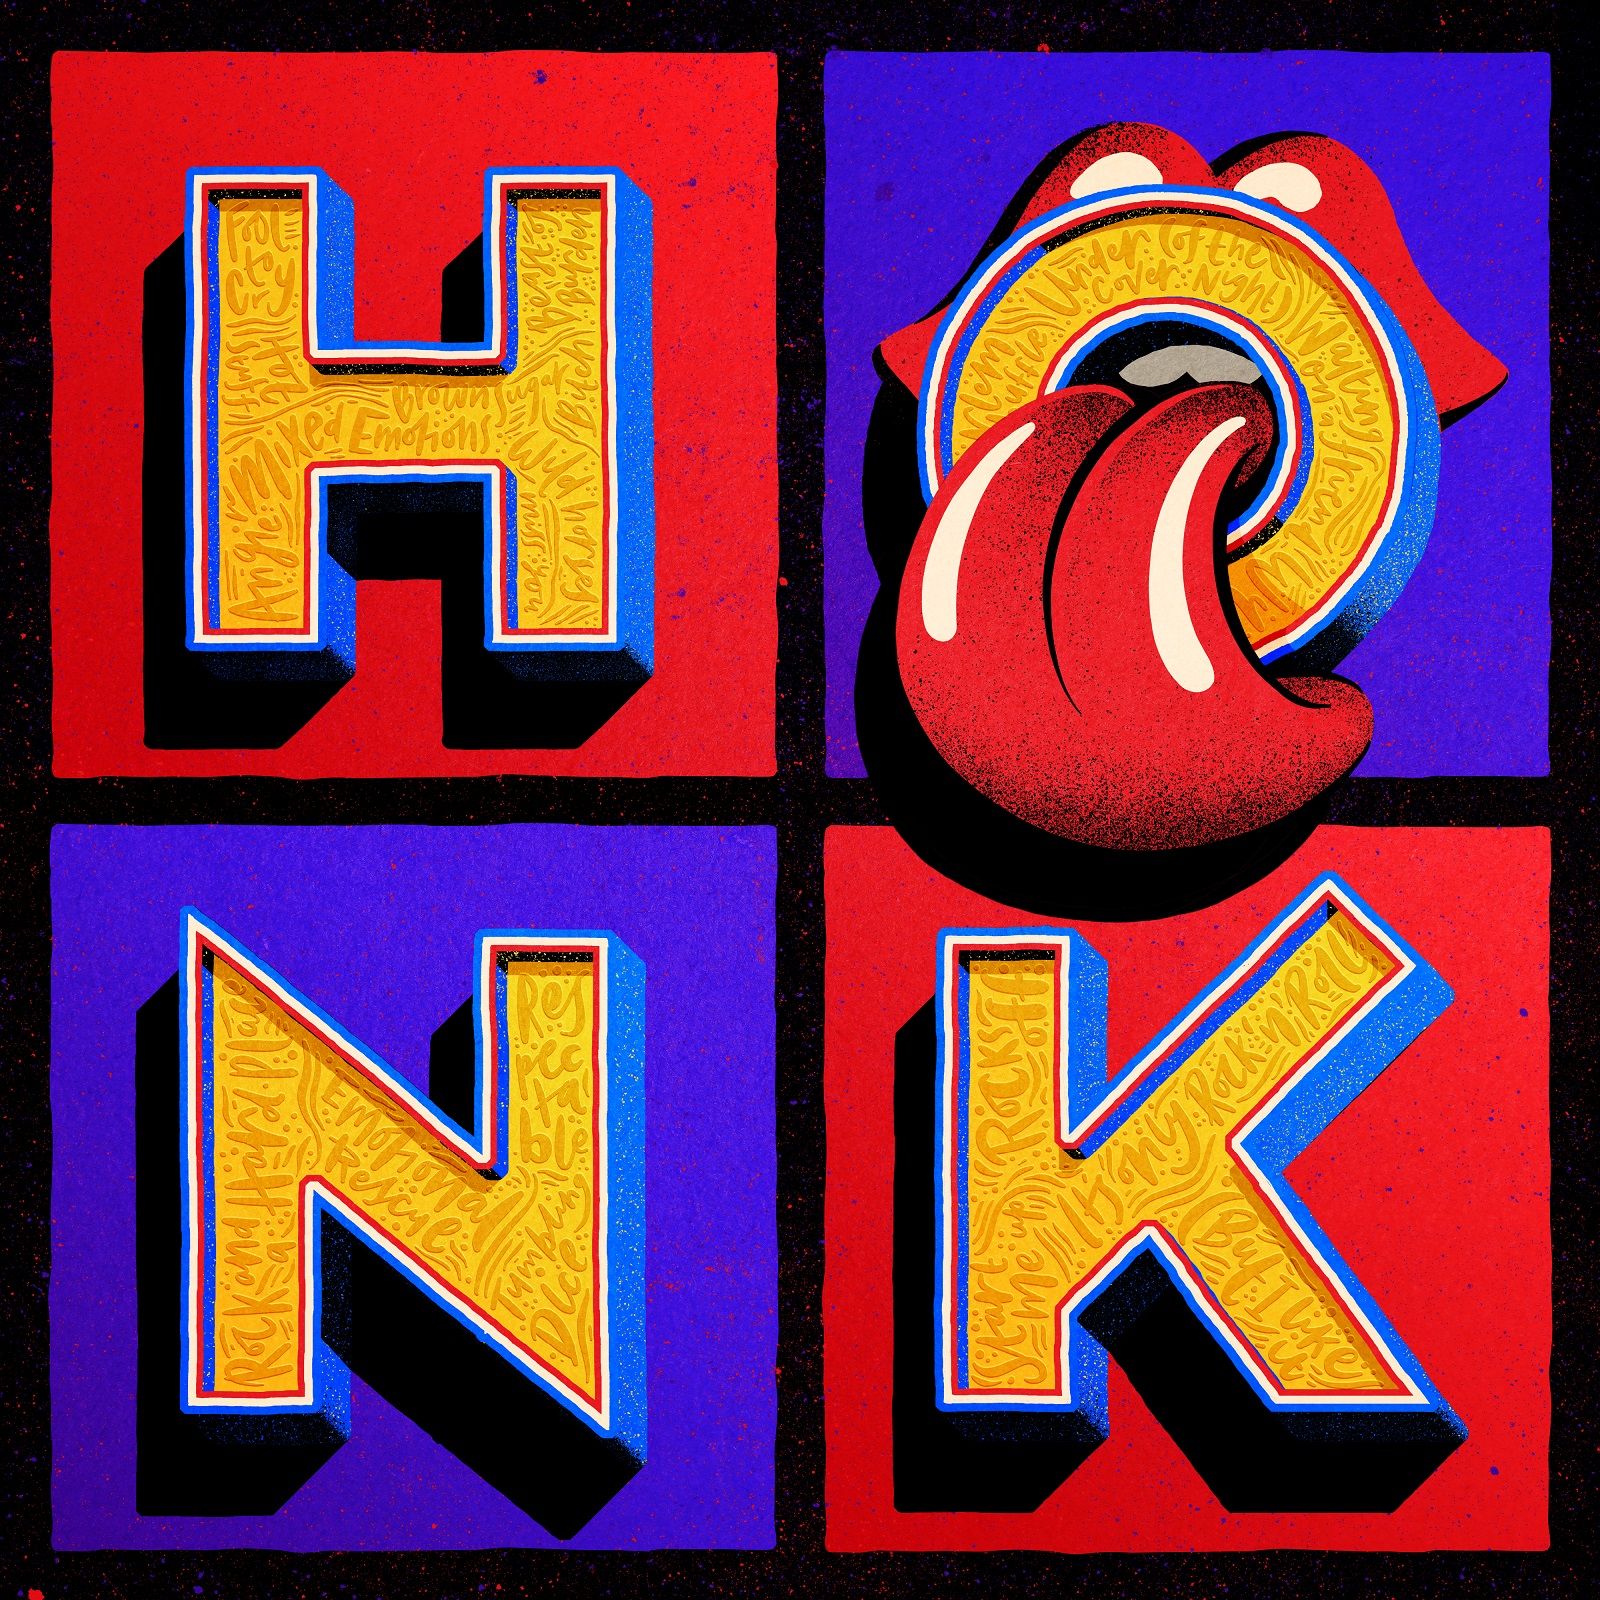 Caption: The Rolling Stones - Honk